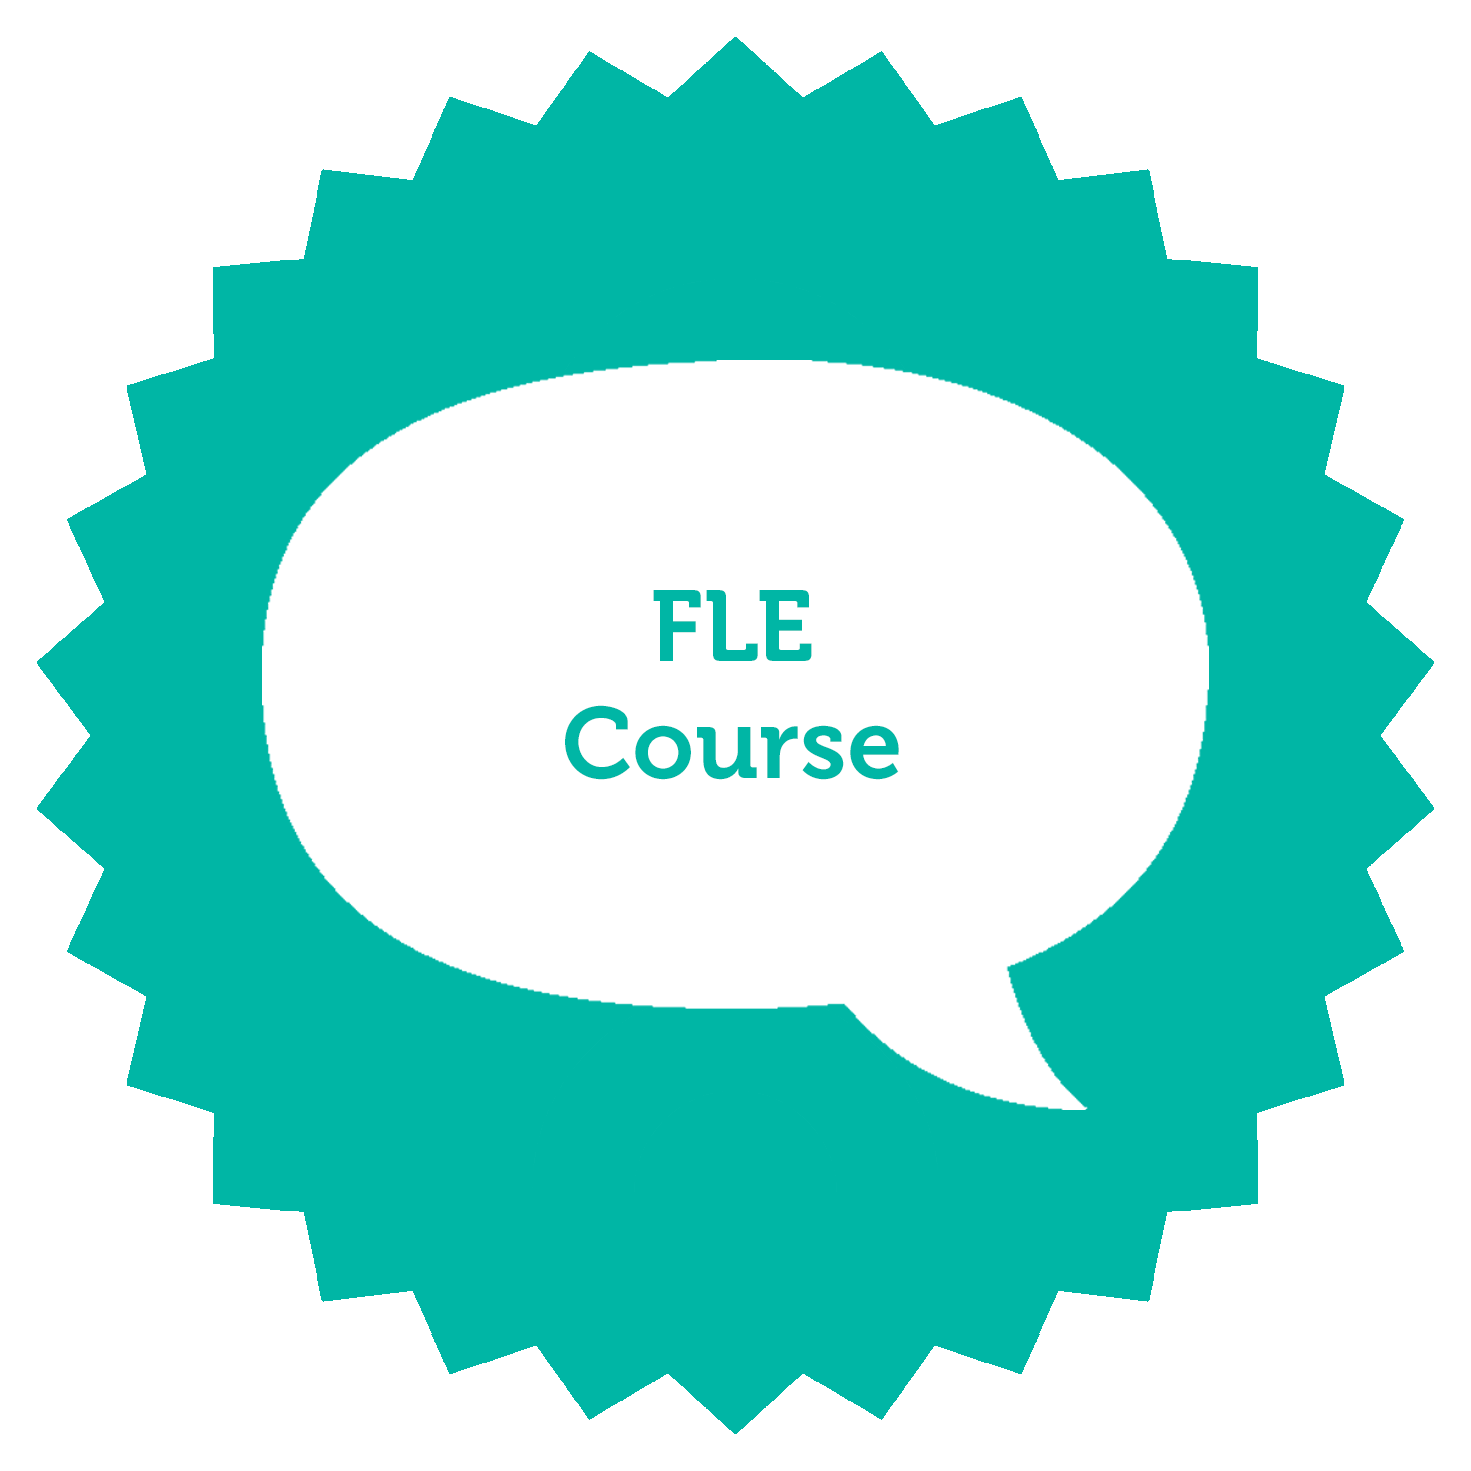 I wish to join the FLE course !